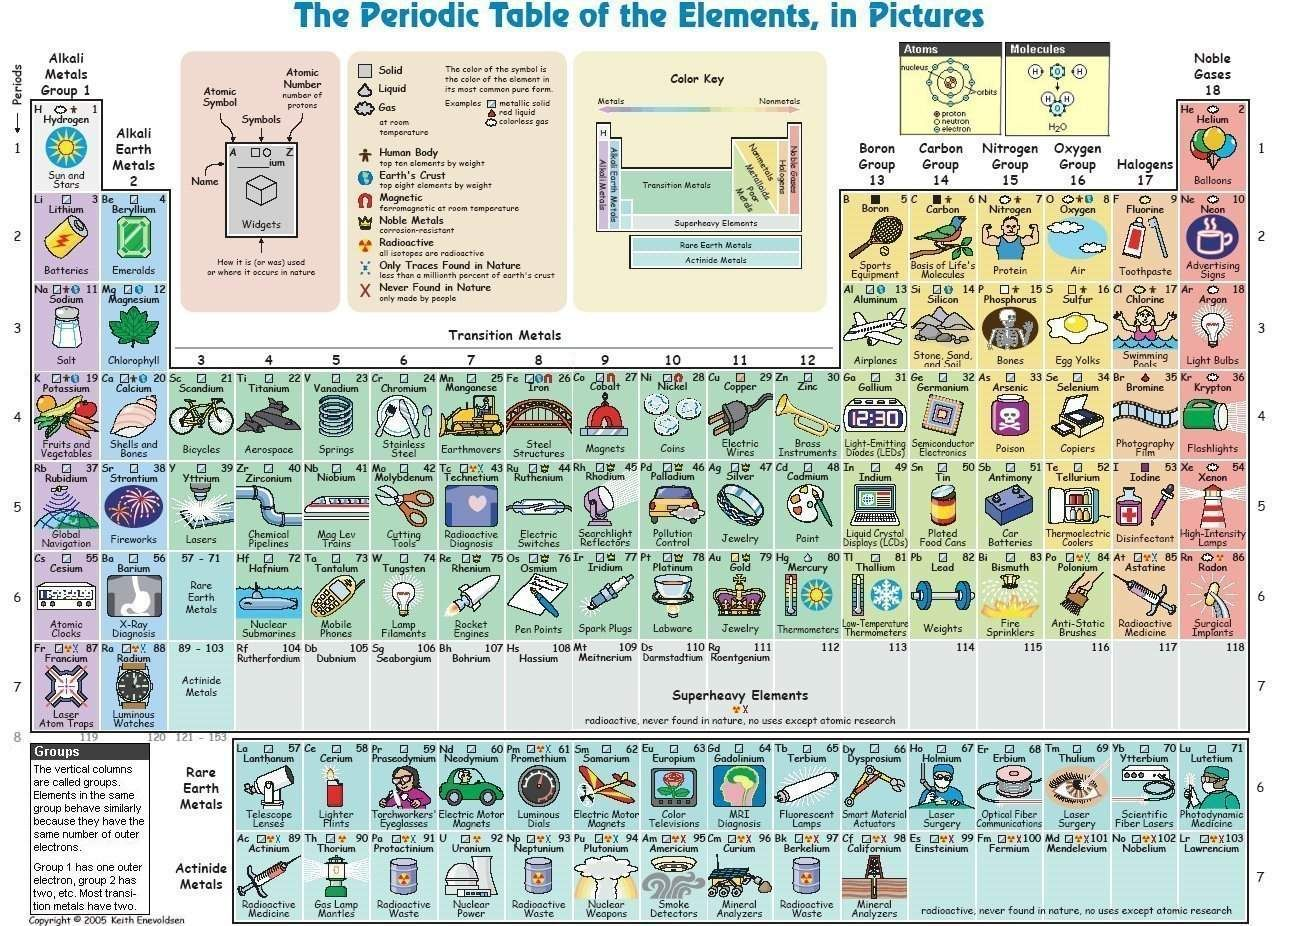 The periodic table of elements in pictures by keith enevoldsen the periodic table of elements in pictures by keith enevoldsen 2005 urtaz Image collections